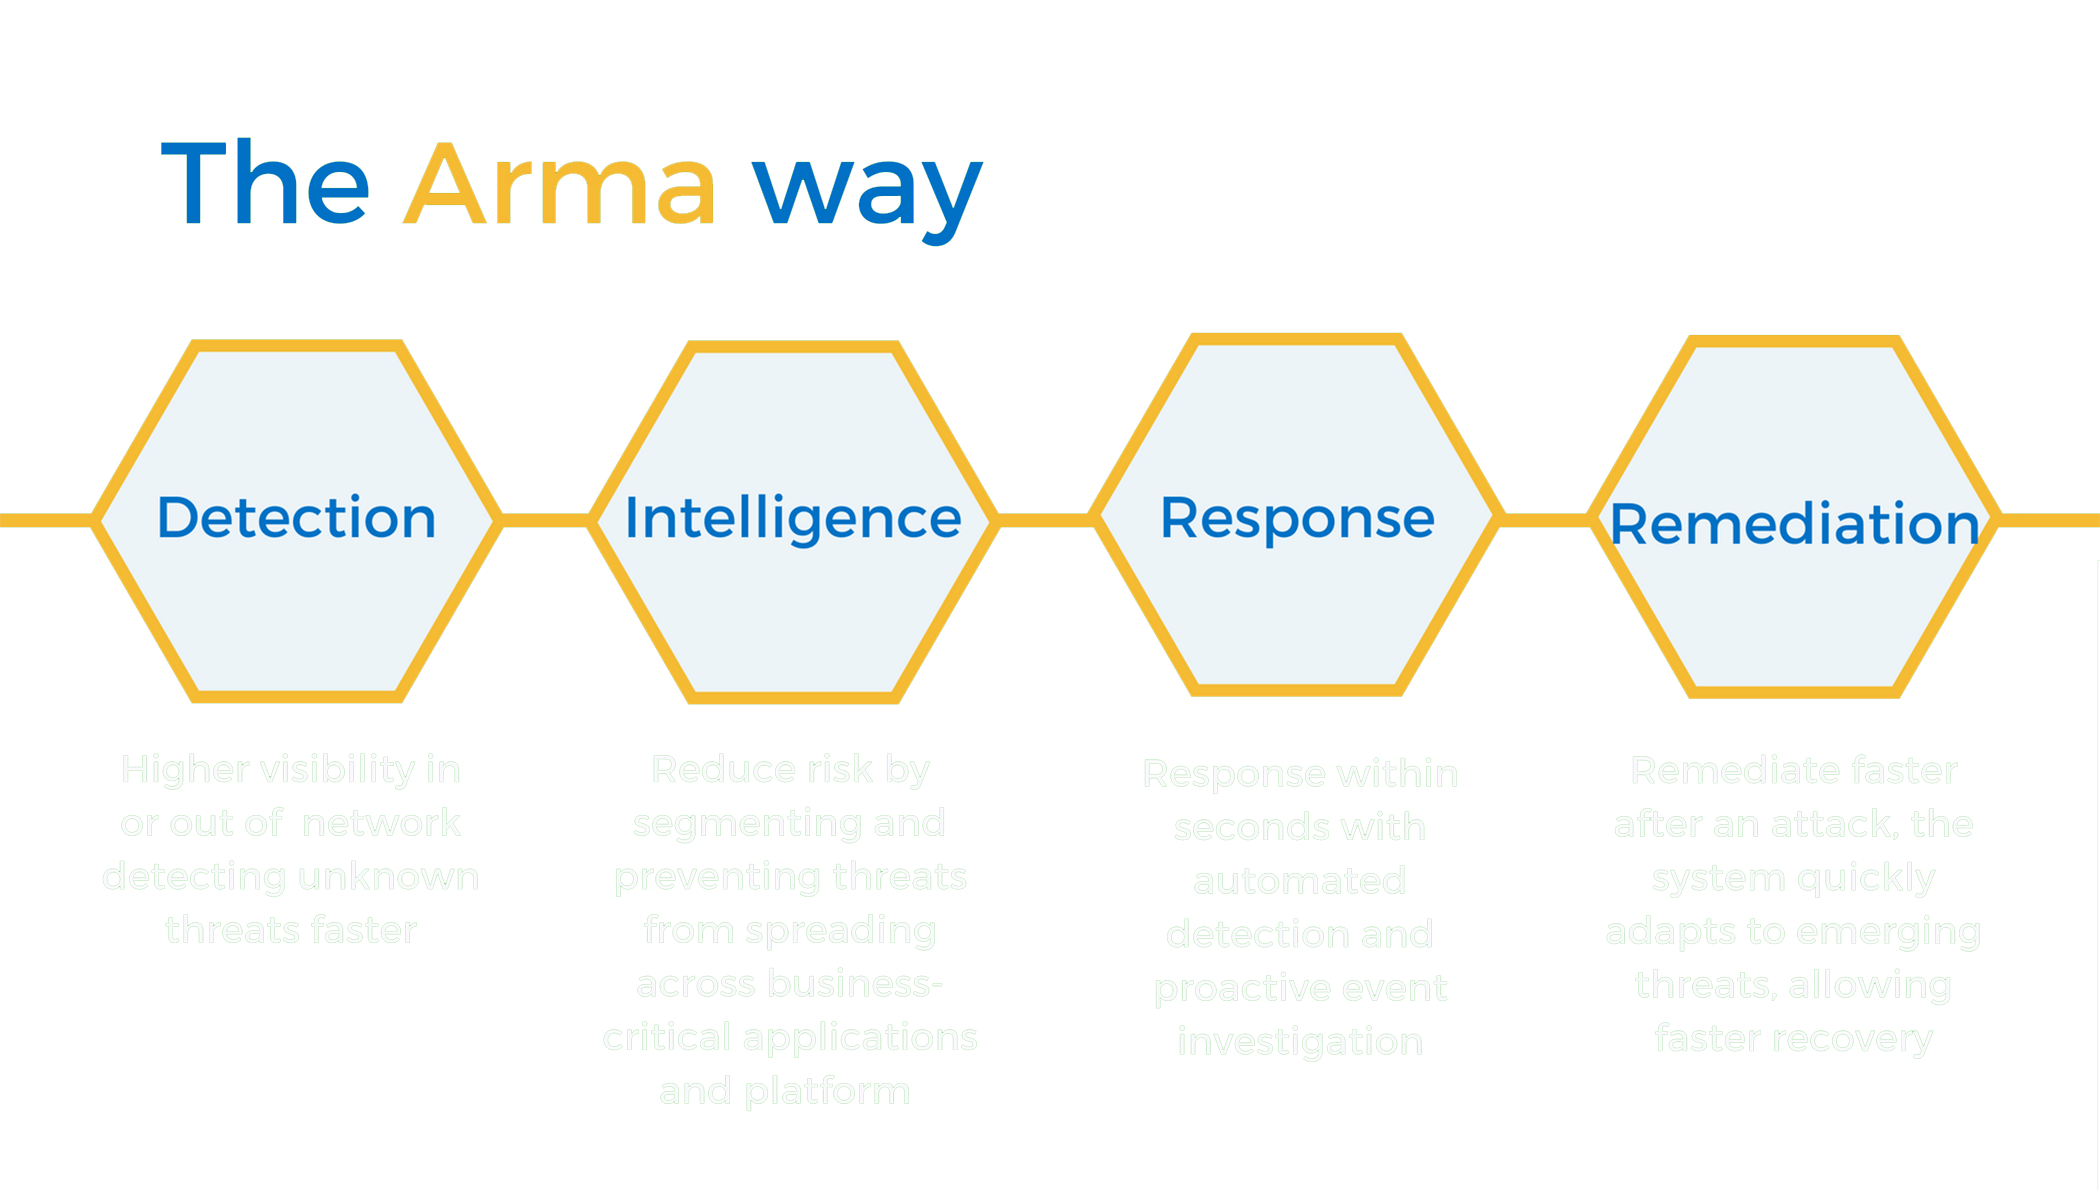 cybersecurity-process-arma-way